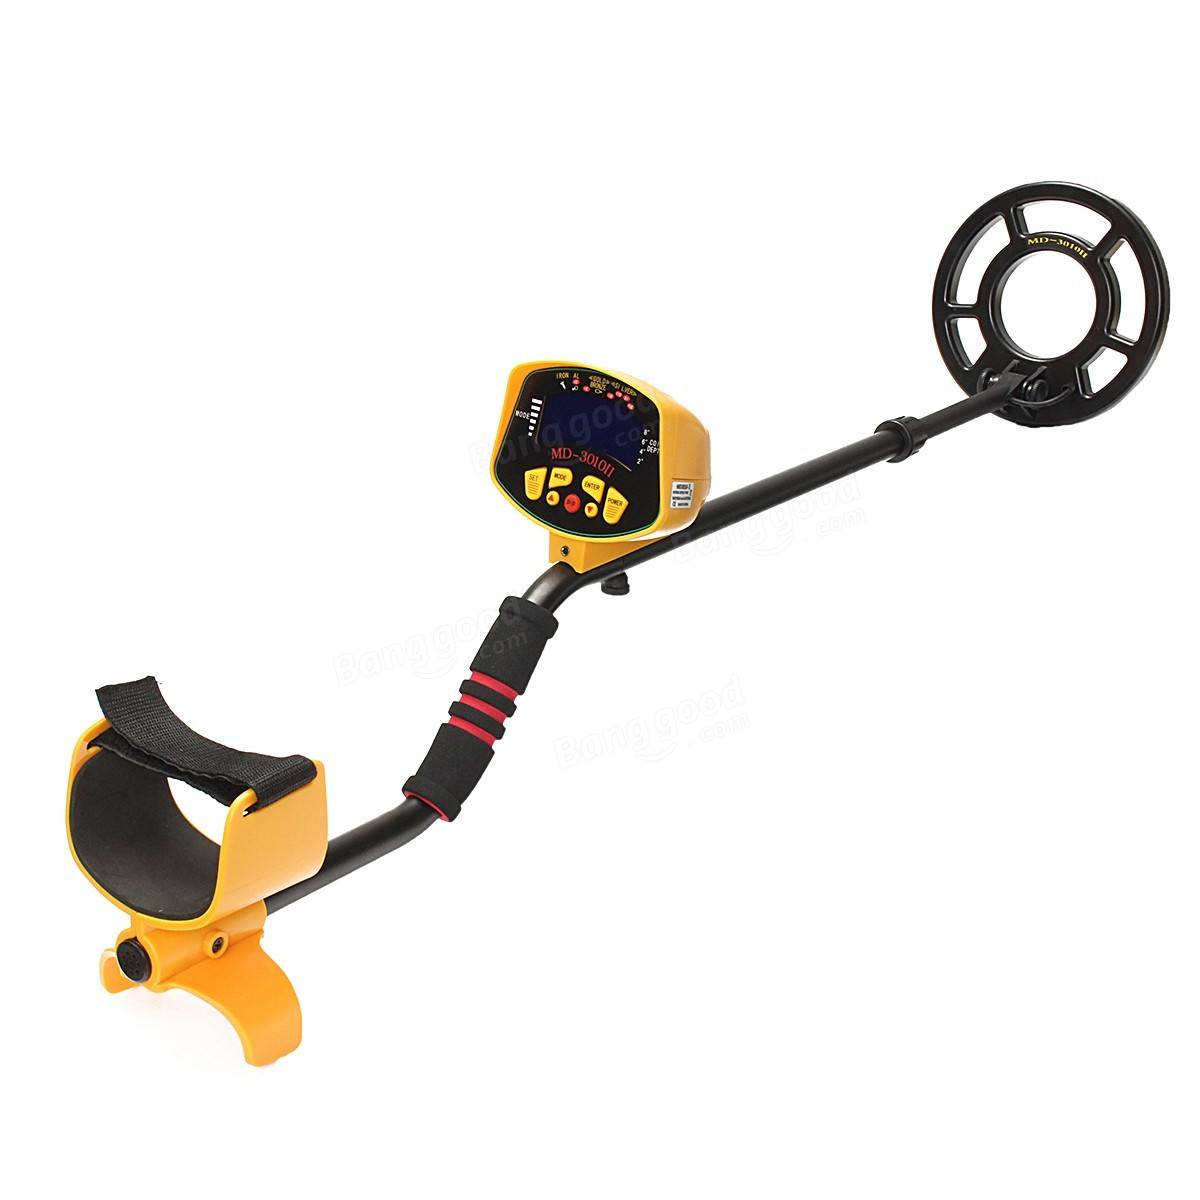 TreasureX™ Metal Detector Waterproof Underwater Hand Held Treasure Finder Gold Detector - Markdown Mart